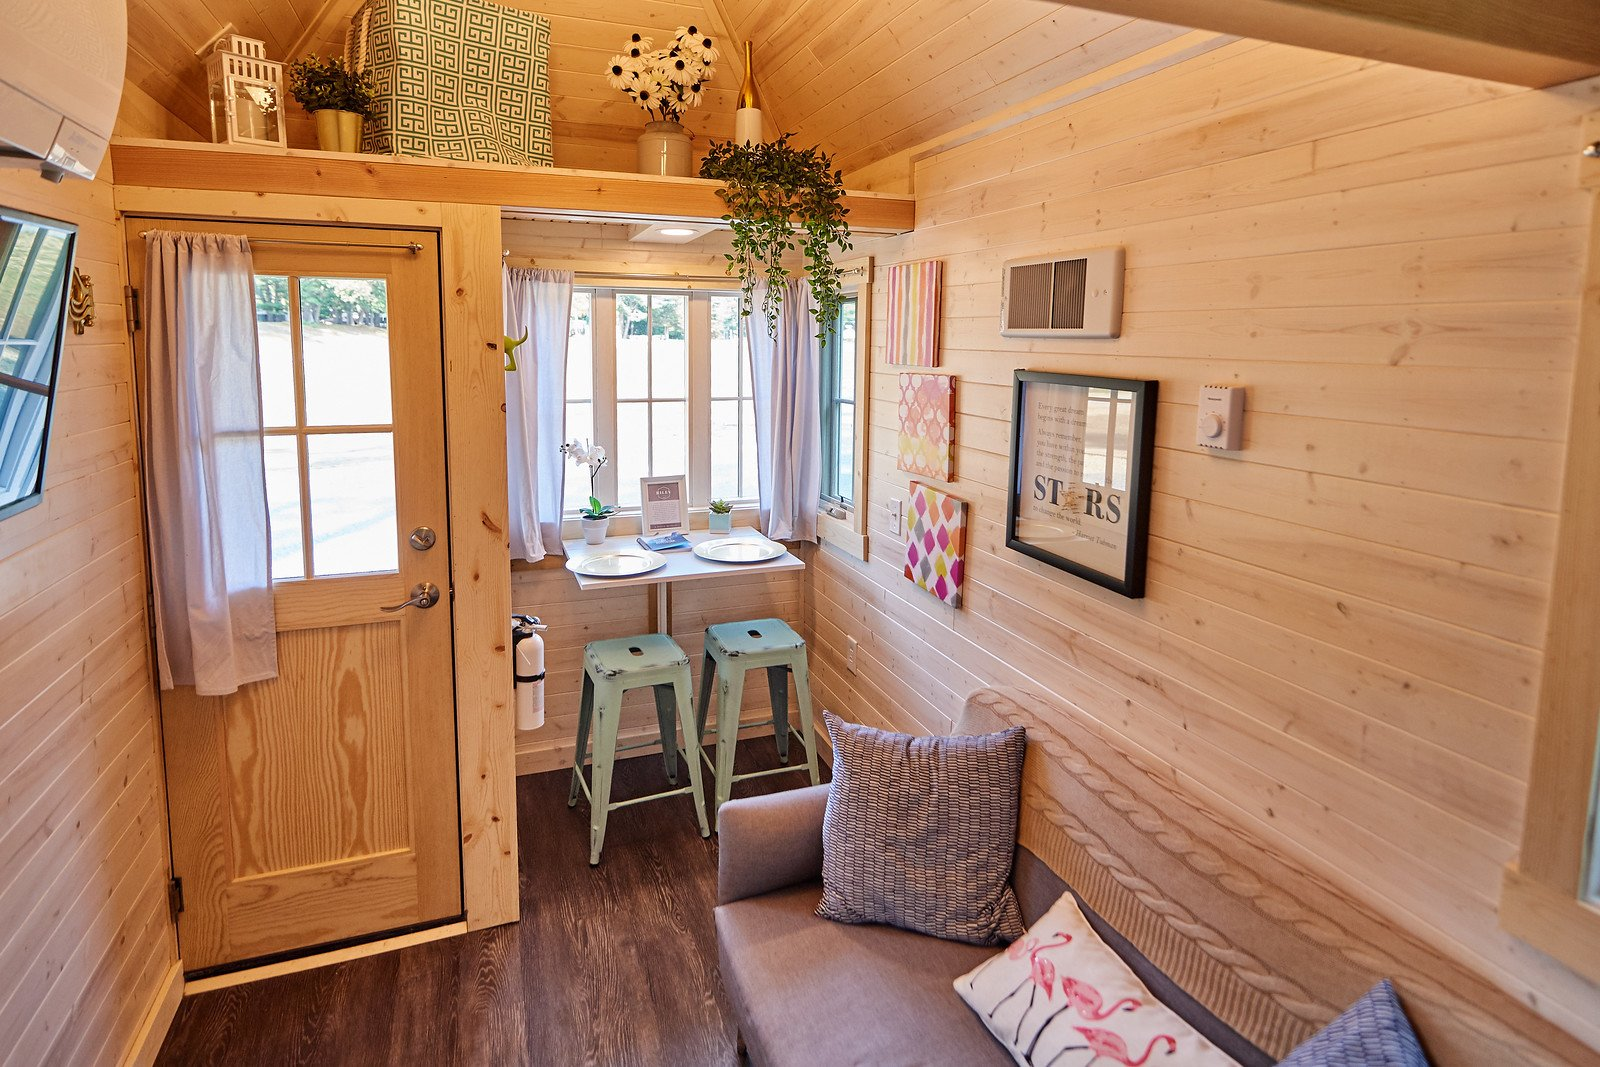 Tumbleweed's tiny house hotels, such as this 305-square-feet property named Riley, can be found in ten locations across North America.